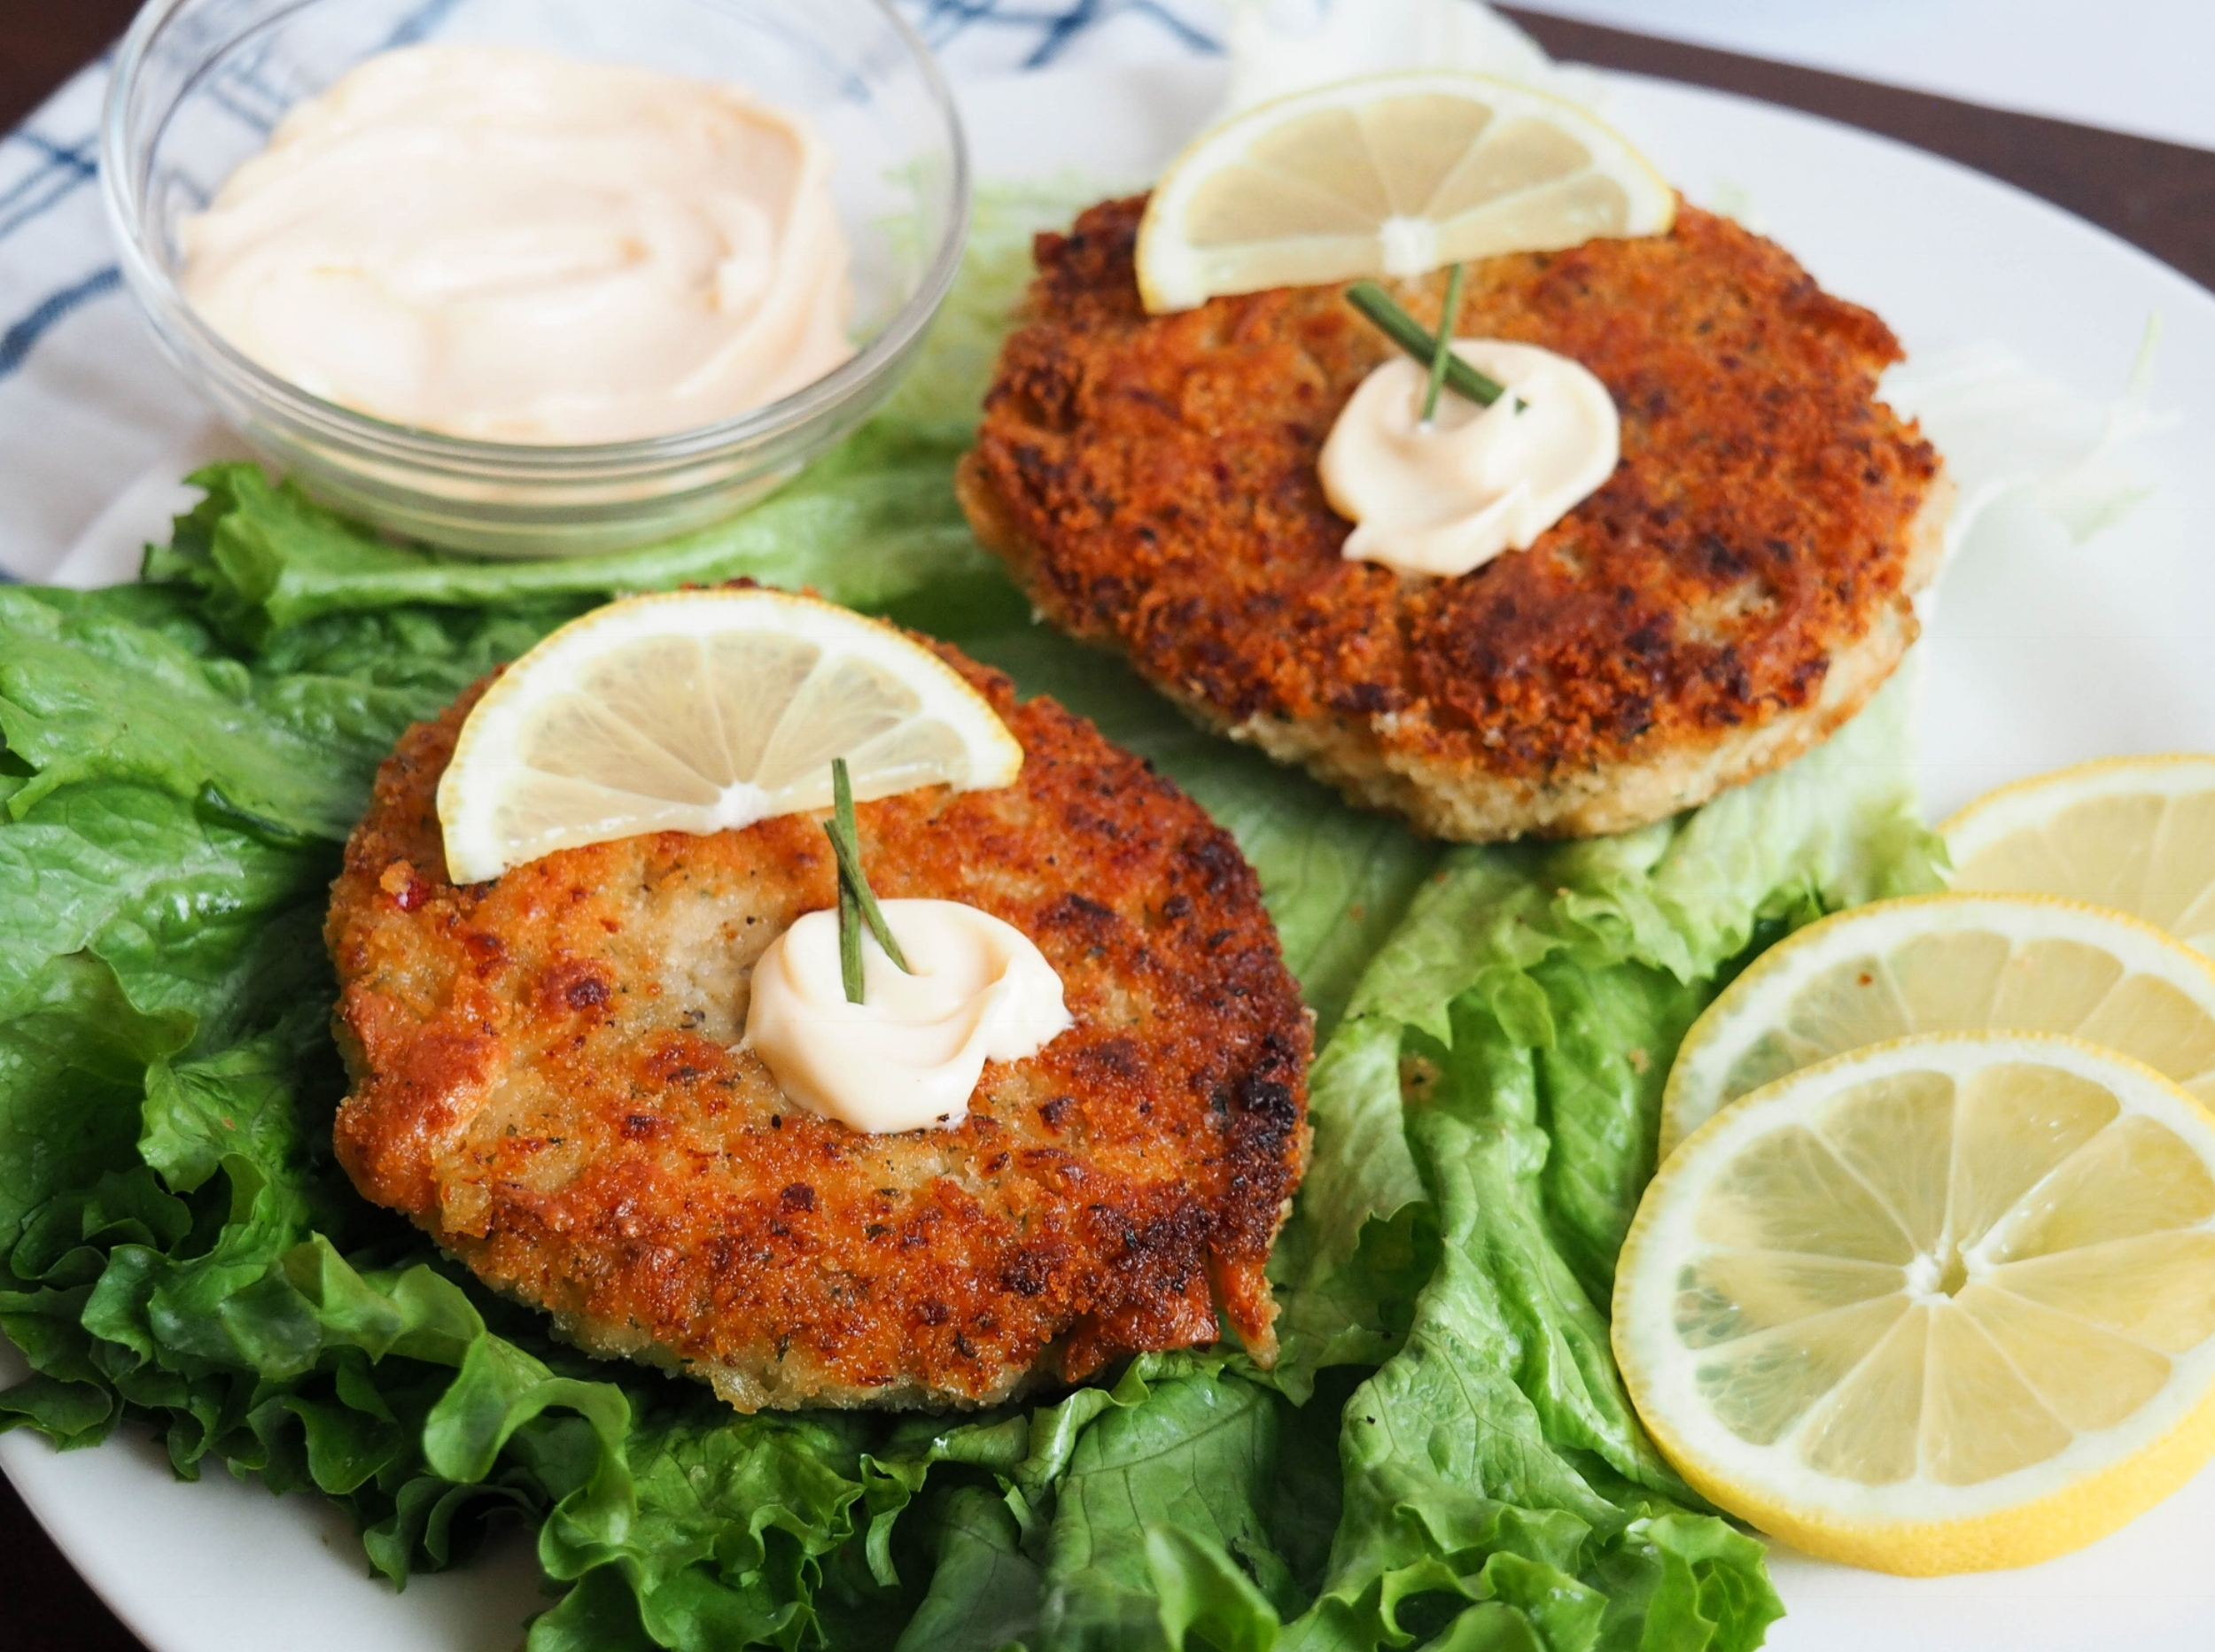 Hungry Planet Crab™   130 calories, 4g fat, 17g protein in a 3.5oz serving. Non-GMO soy and wheat.   Hungry Planet™ Bulk Crab Meat Chub 2lb   Hungry Planet™ Crab Cake 4.0oz